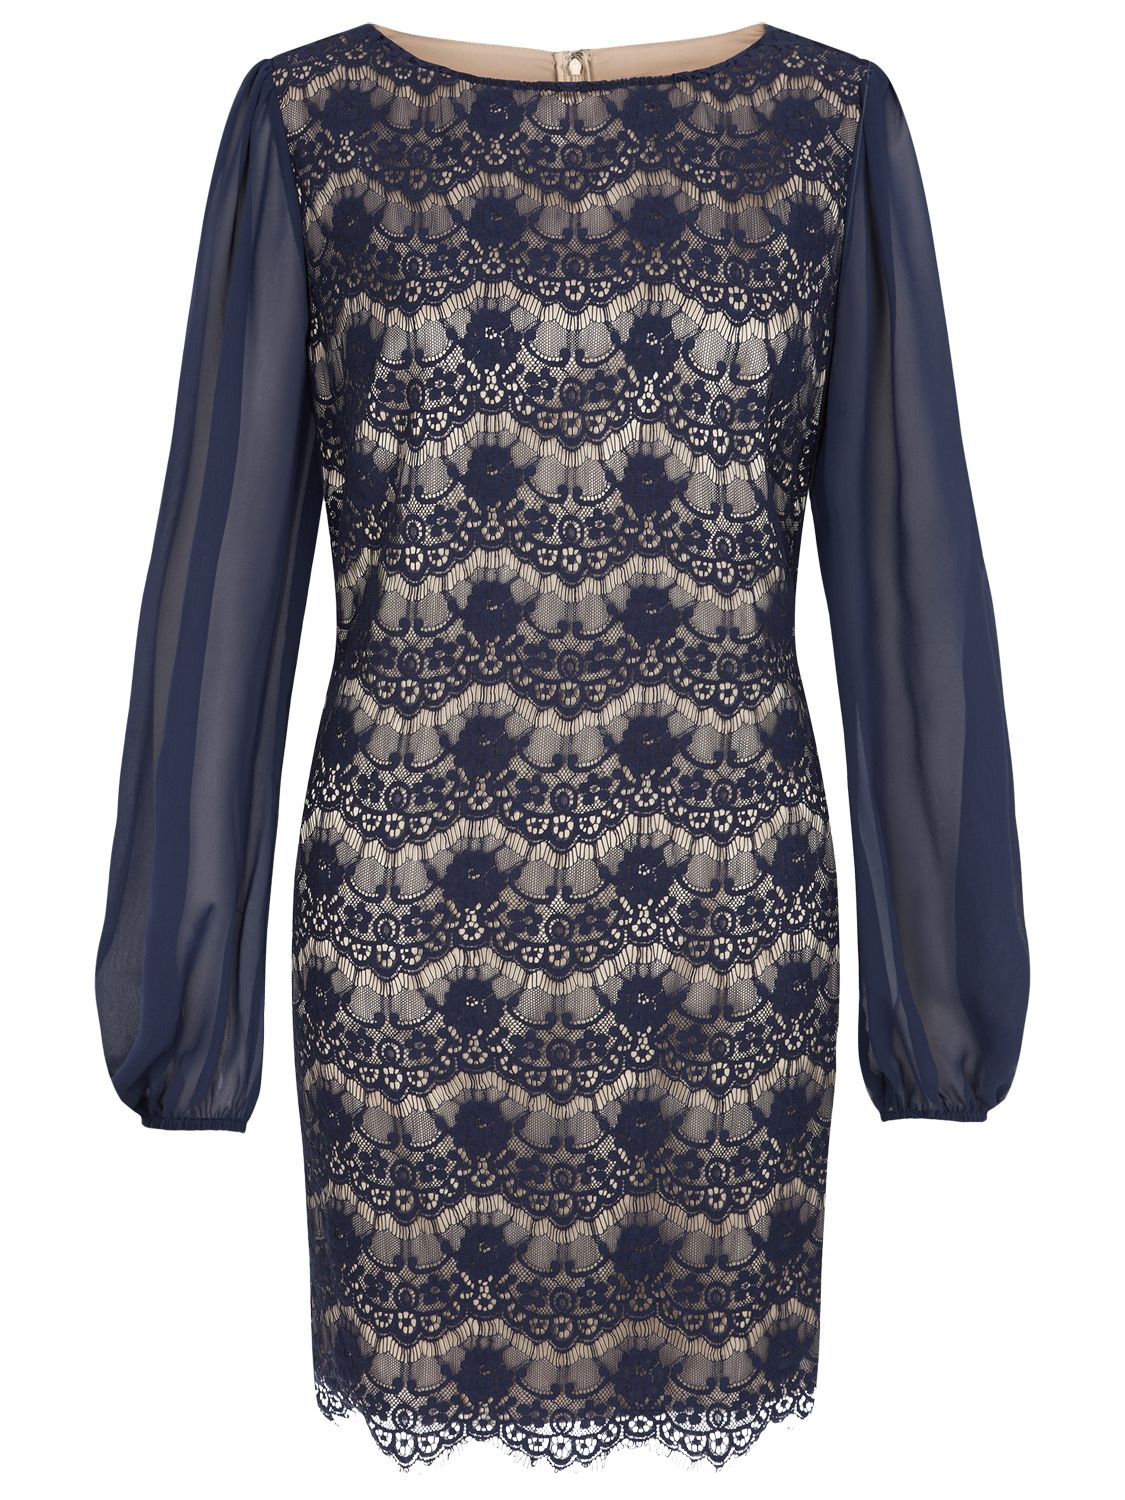 planet lace tunic dress, planet, lace, tunic, dress, navy navy black navy black black black navy navy black black navy navy, 10 12 14 16 12 18 16 18 14 10 8 8 20, clearance, womenswear offers, womens dresses offers, new years party offers, women, plus size, inactive womenswear, new reductions, womens dresses, special offers, 1771185